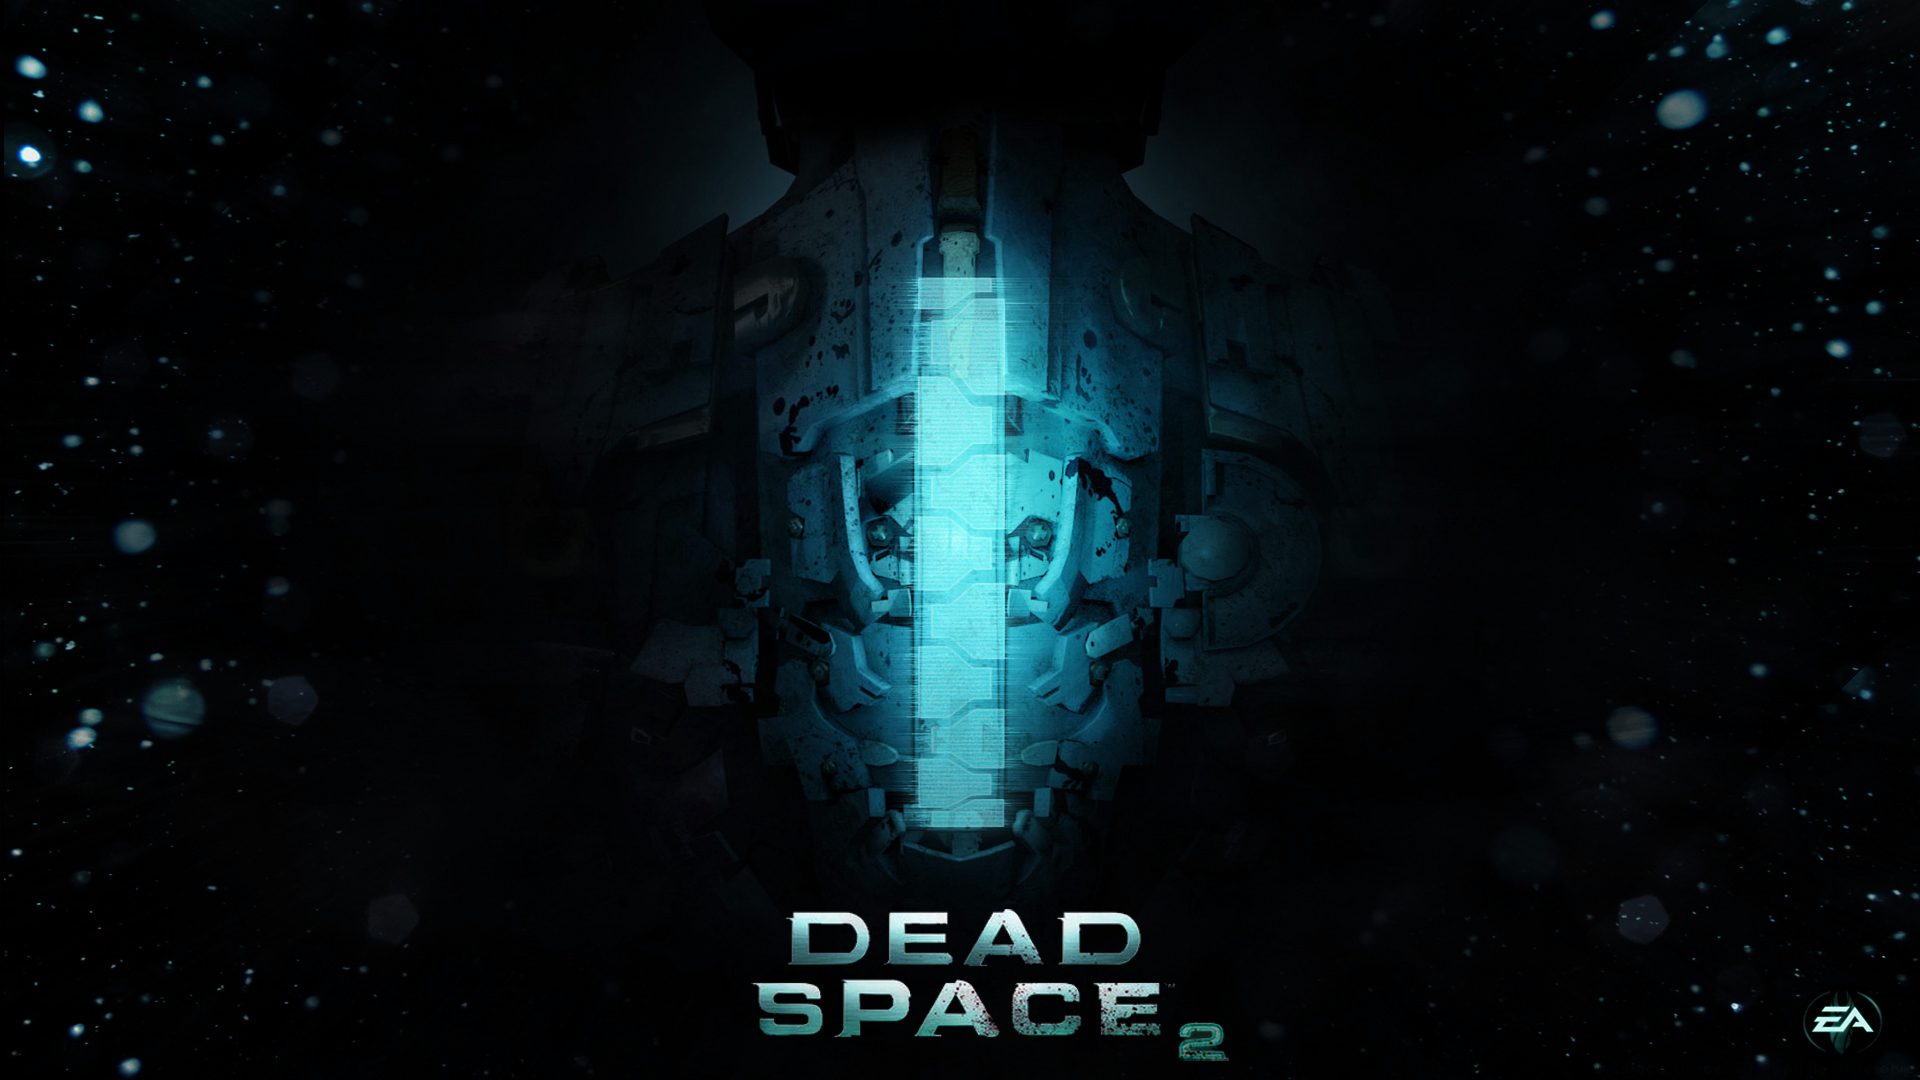 Dead space hd wallpapers 43 wallpapers adorable wallpapers - Dead space 1 wallpaper hd ...